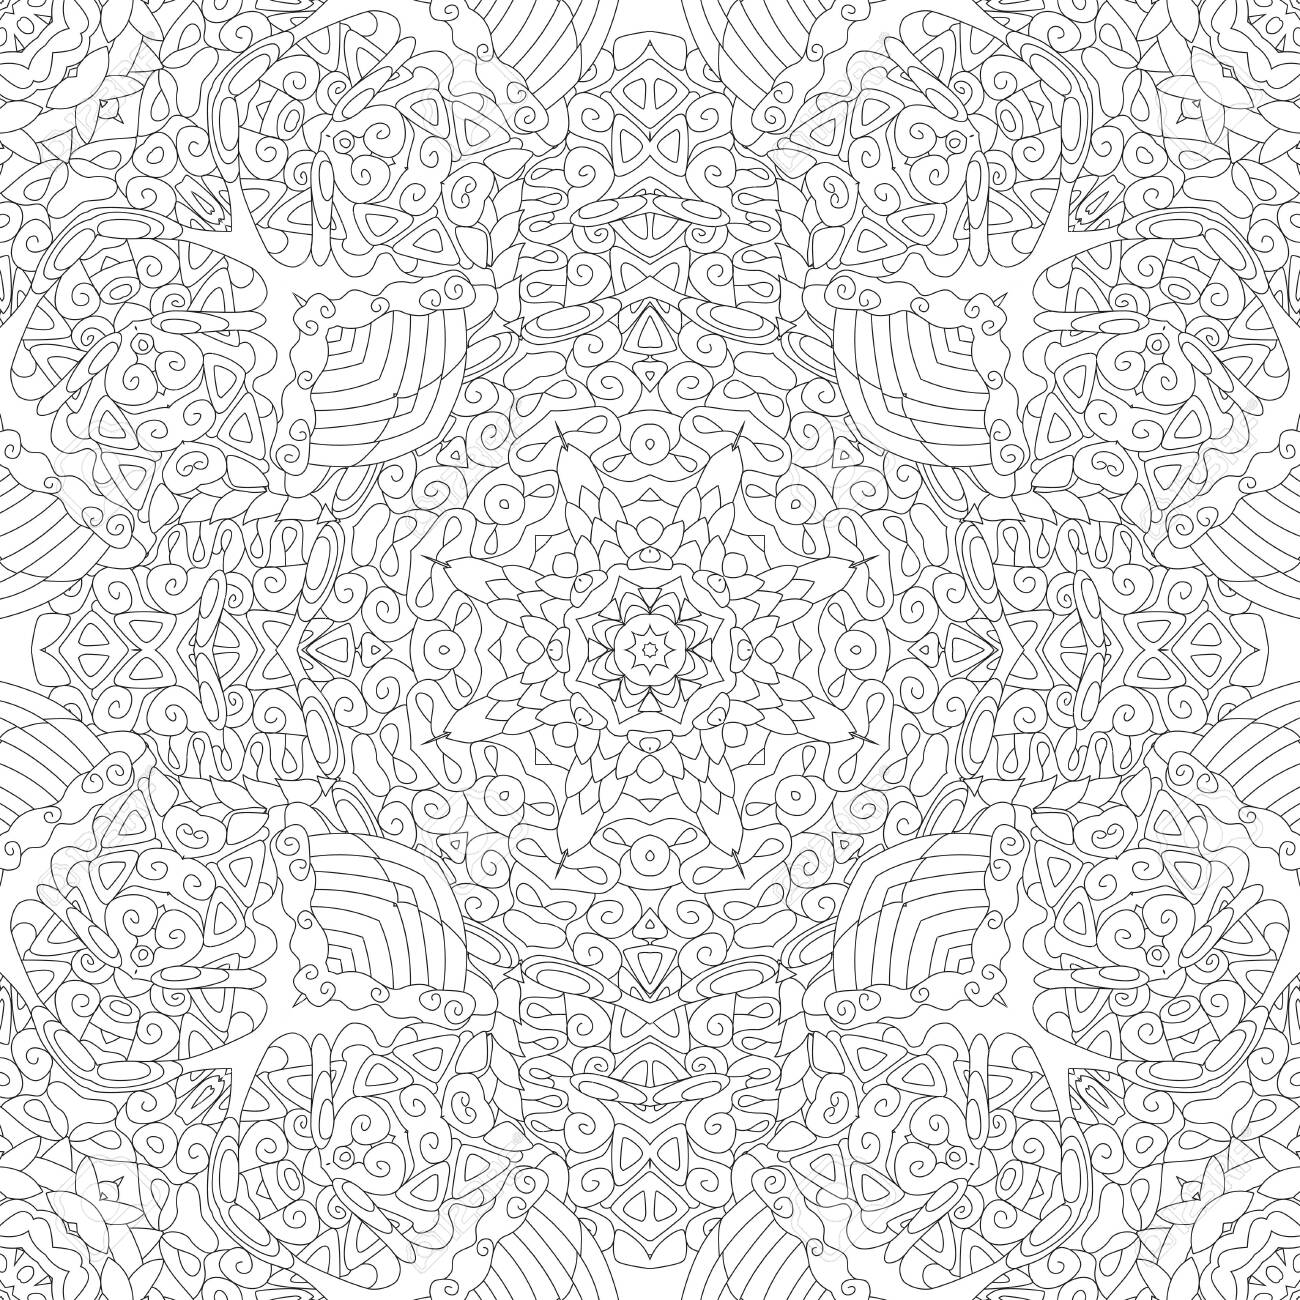 Decorative square seamless ornaments. Unusual flower shape. Oriental vector, Anti-stress therapy patterns. Weave design elements. - 123363424